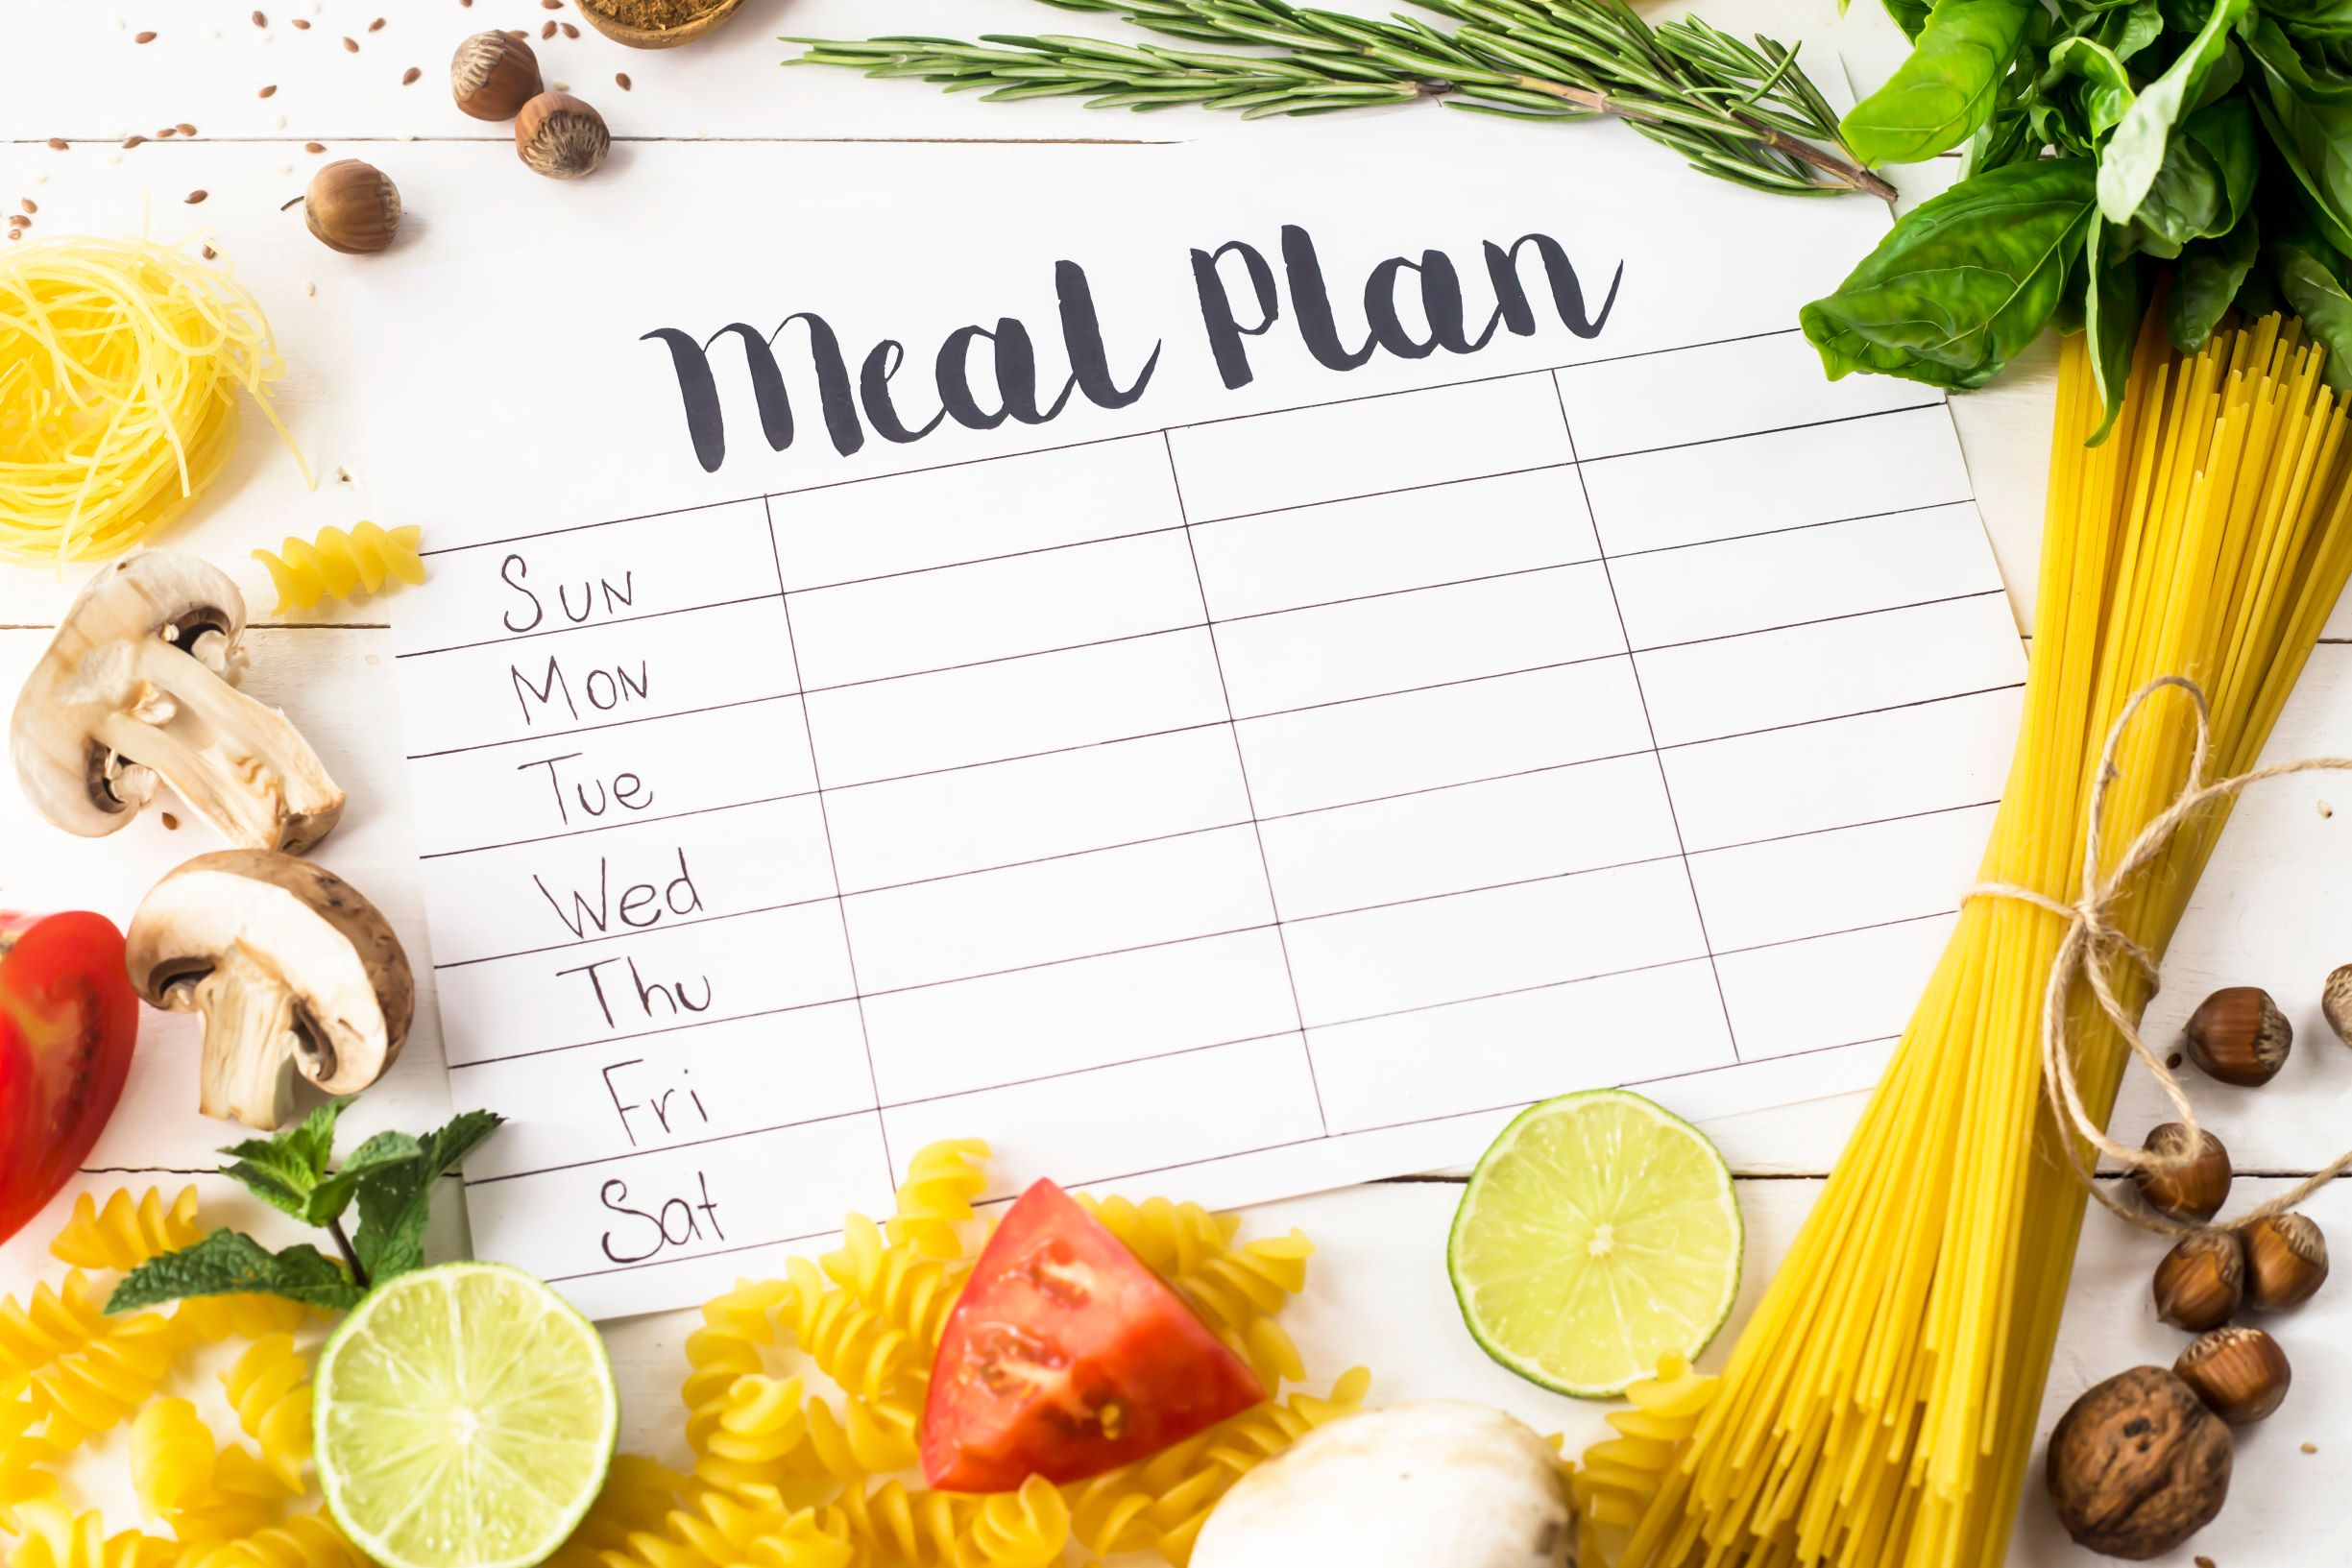 Meal plan weekly calendar with veggies surrounding it.